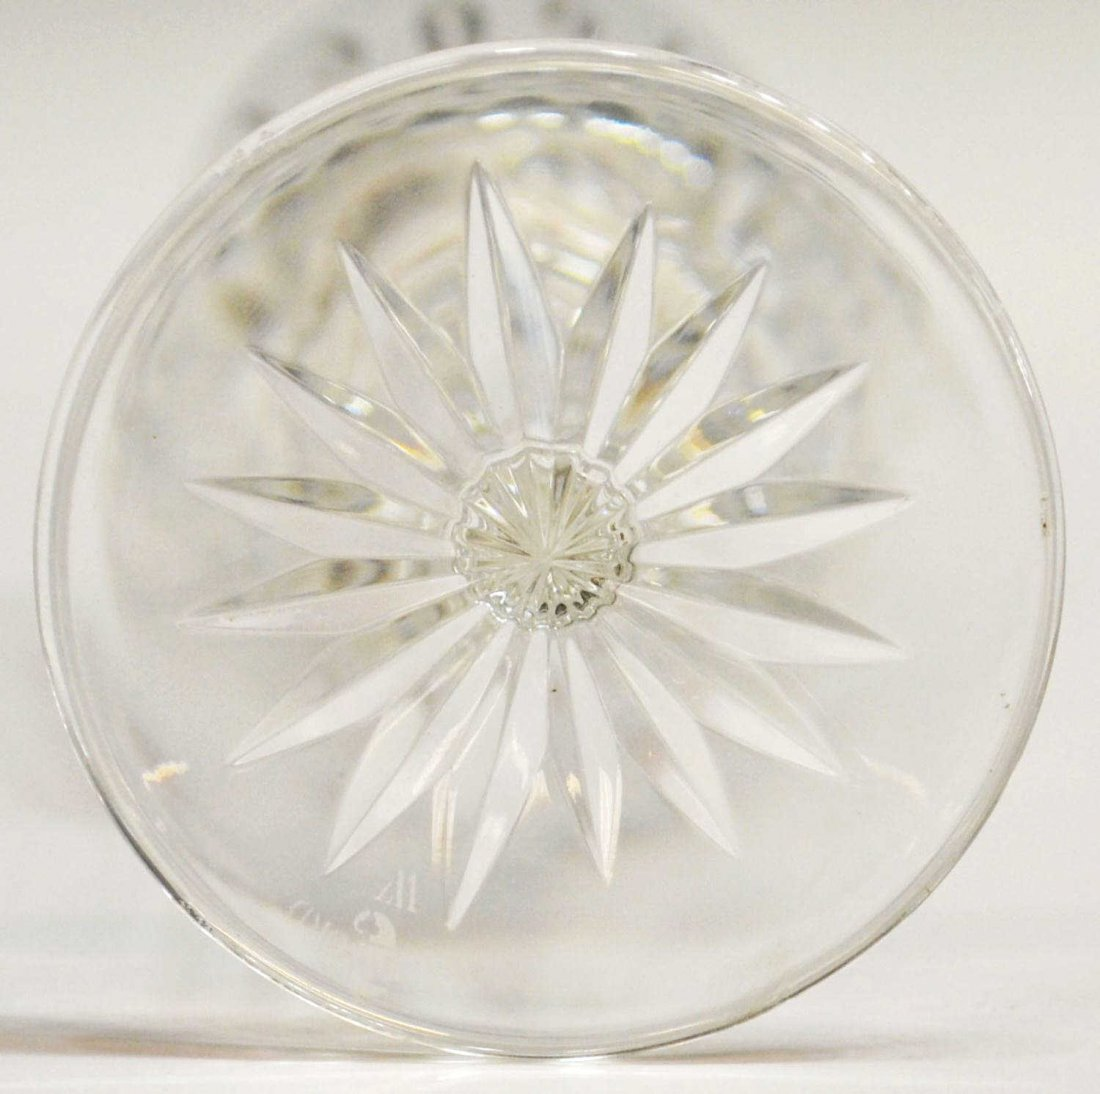 408: (7) WATERFORD CRYSTAL 'LISMORE' CHAMPAGNE FLUTES - 4